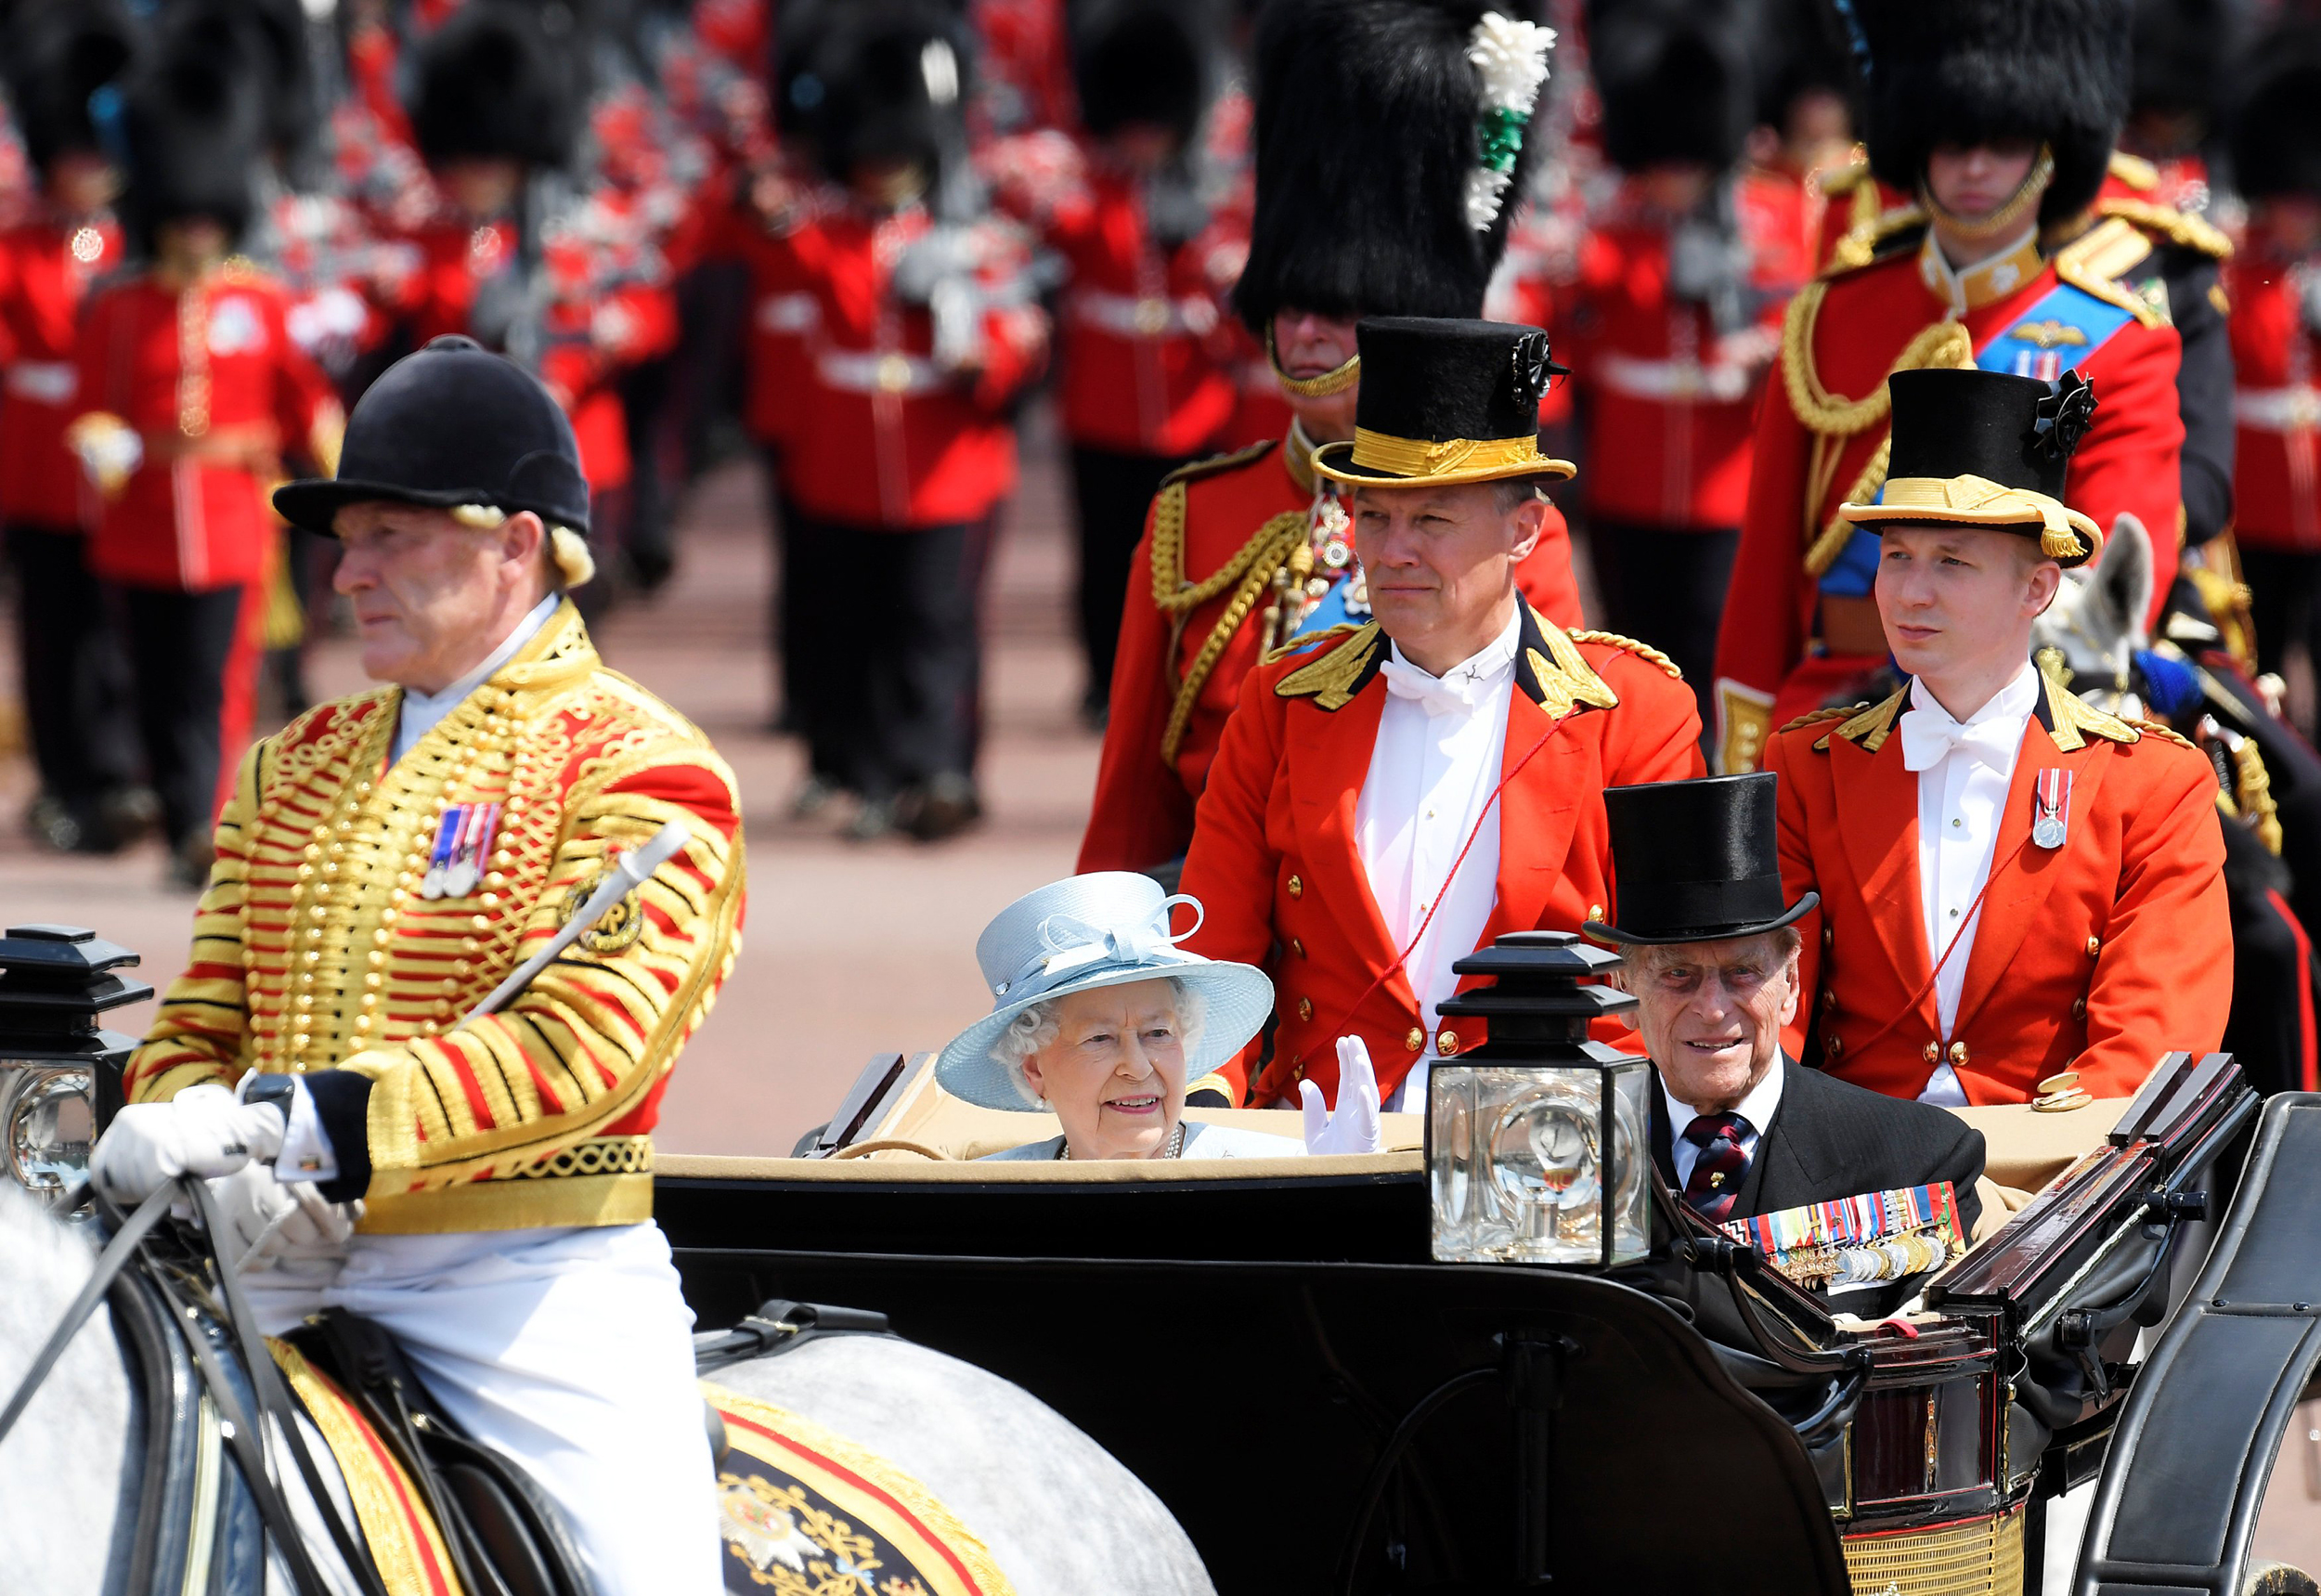 Royal Family Celebrates Queen's Birthday with Trooping of